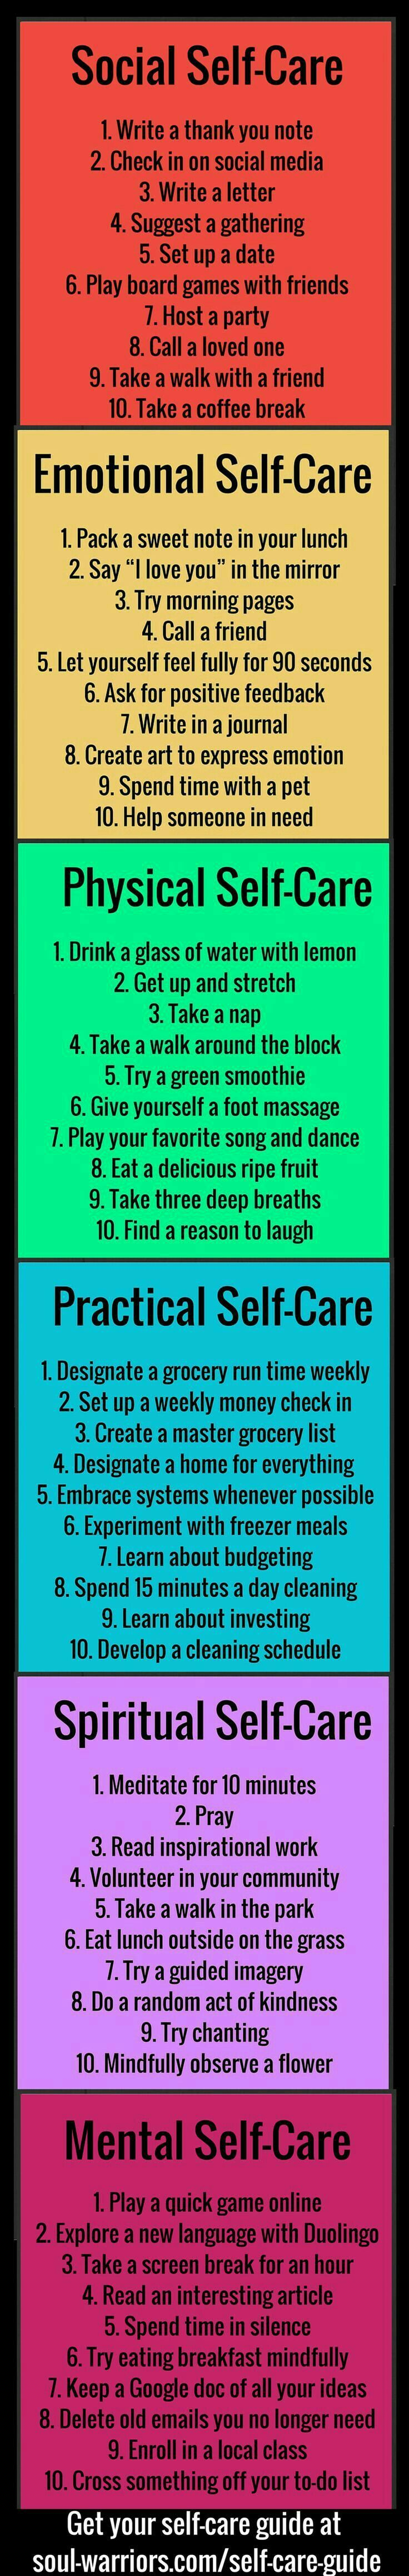 Self-care activities - www.jehle-coaching.com